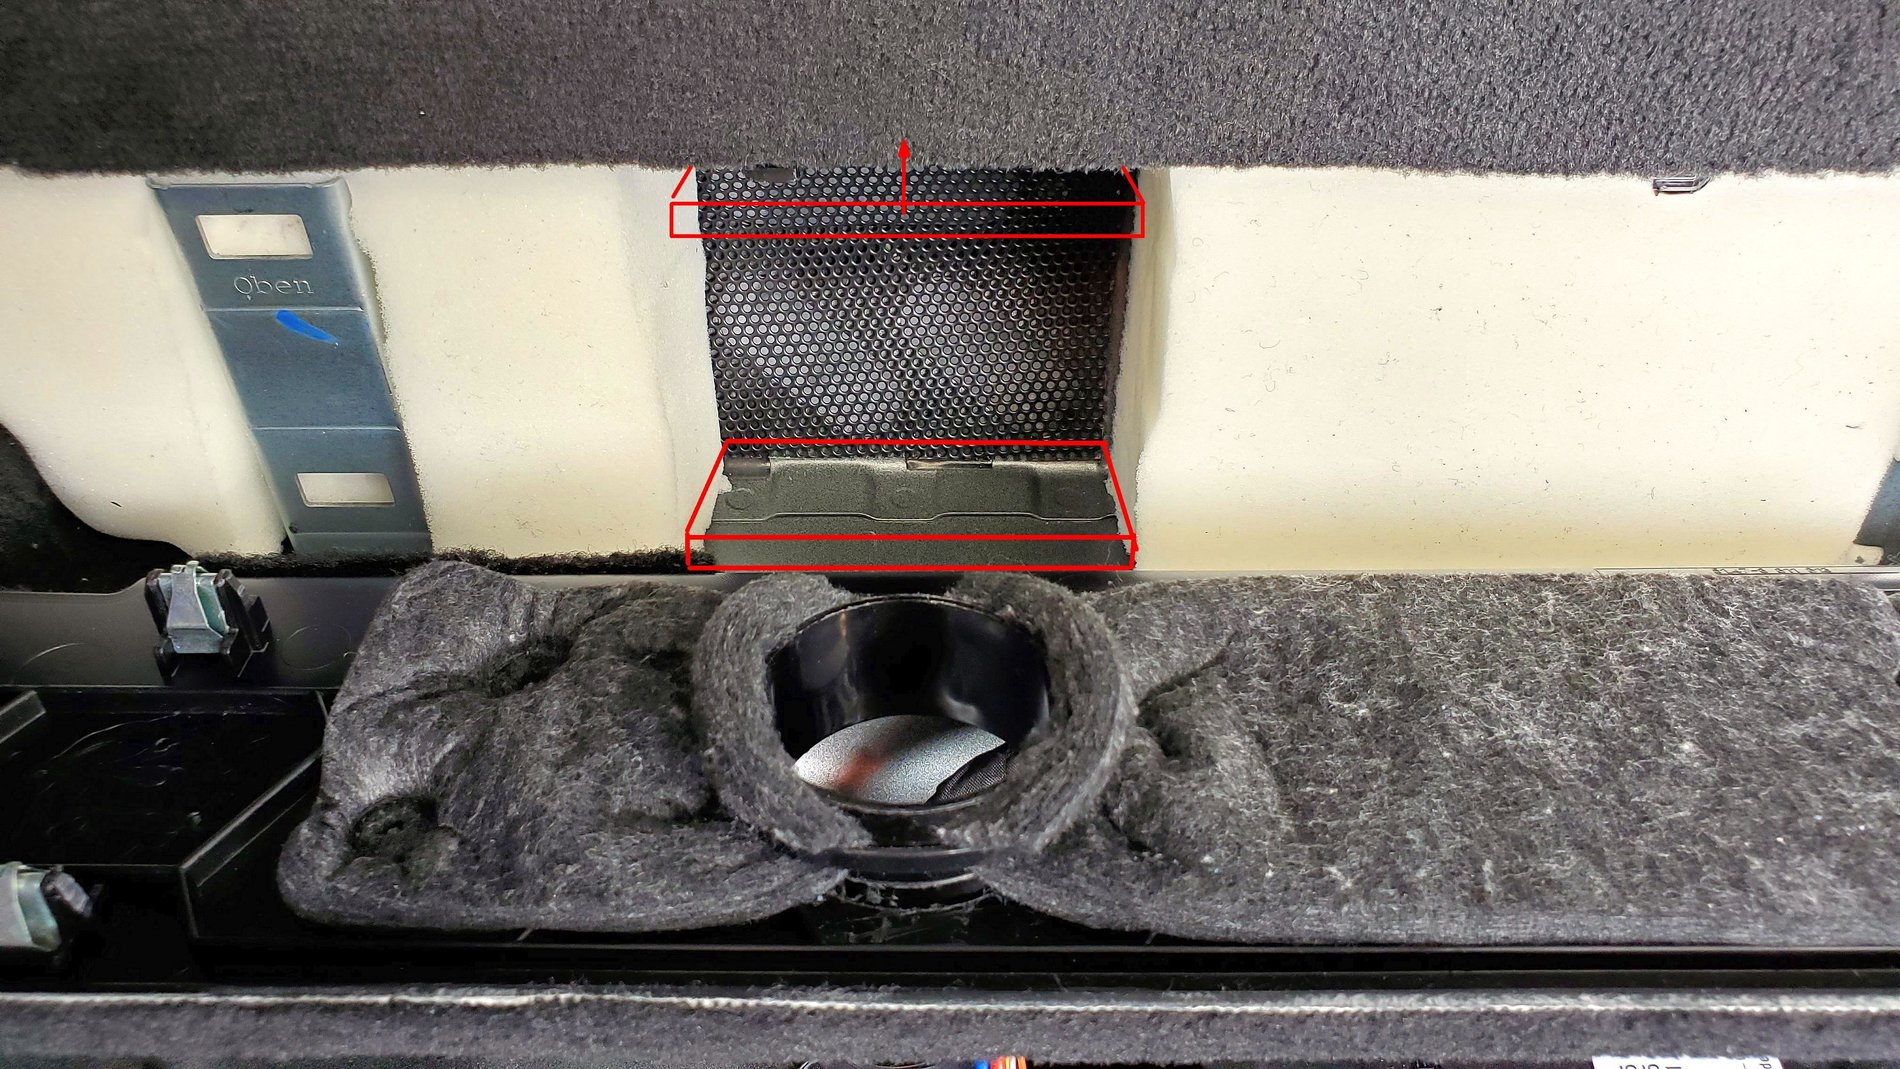 subwoofer 7b ported rear panel insulation strip.jpg